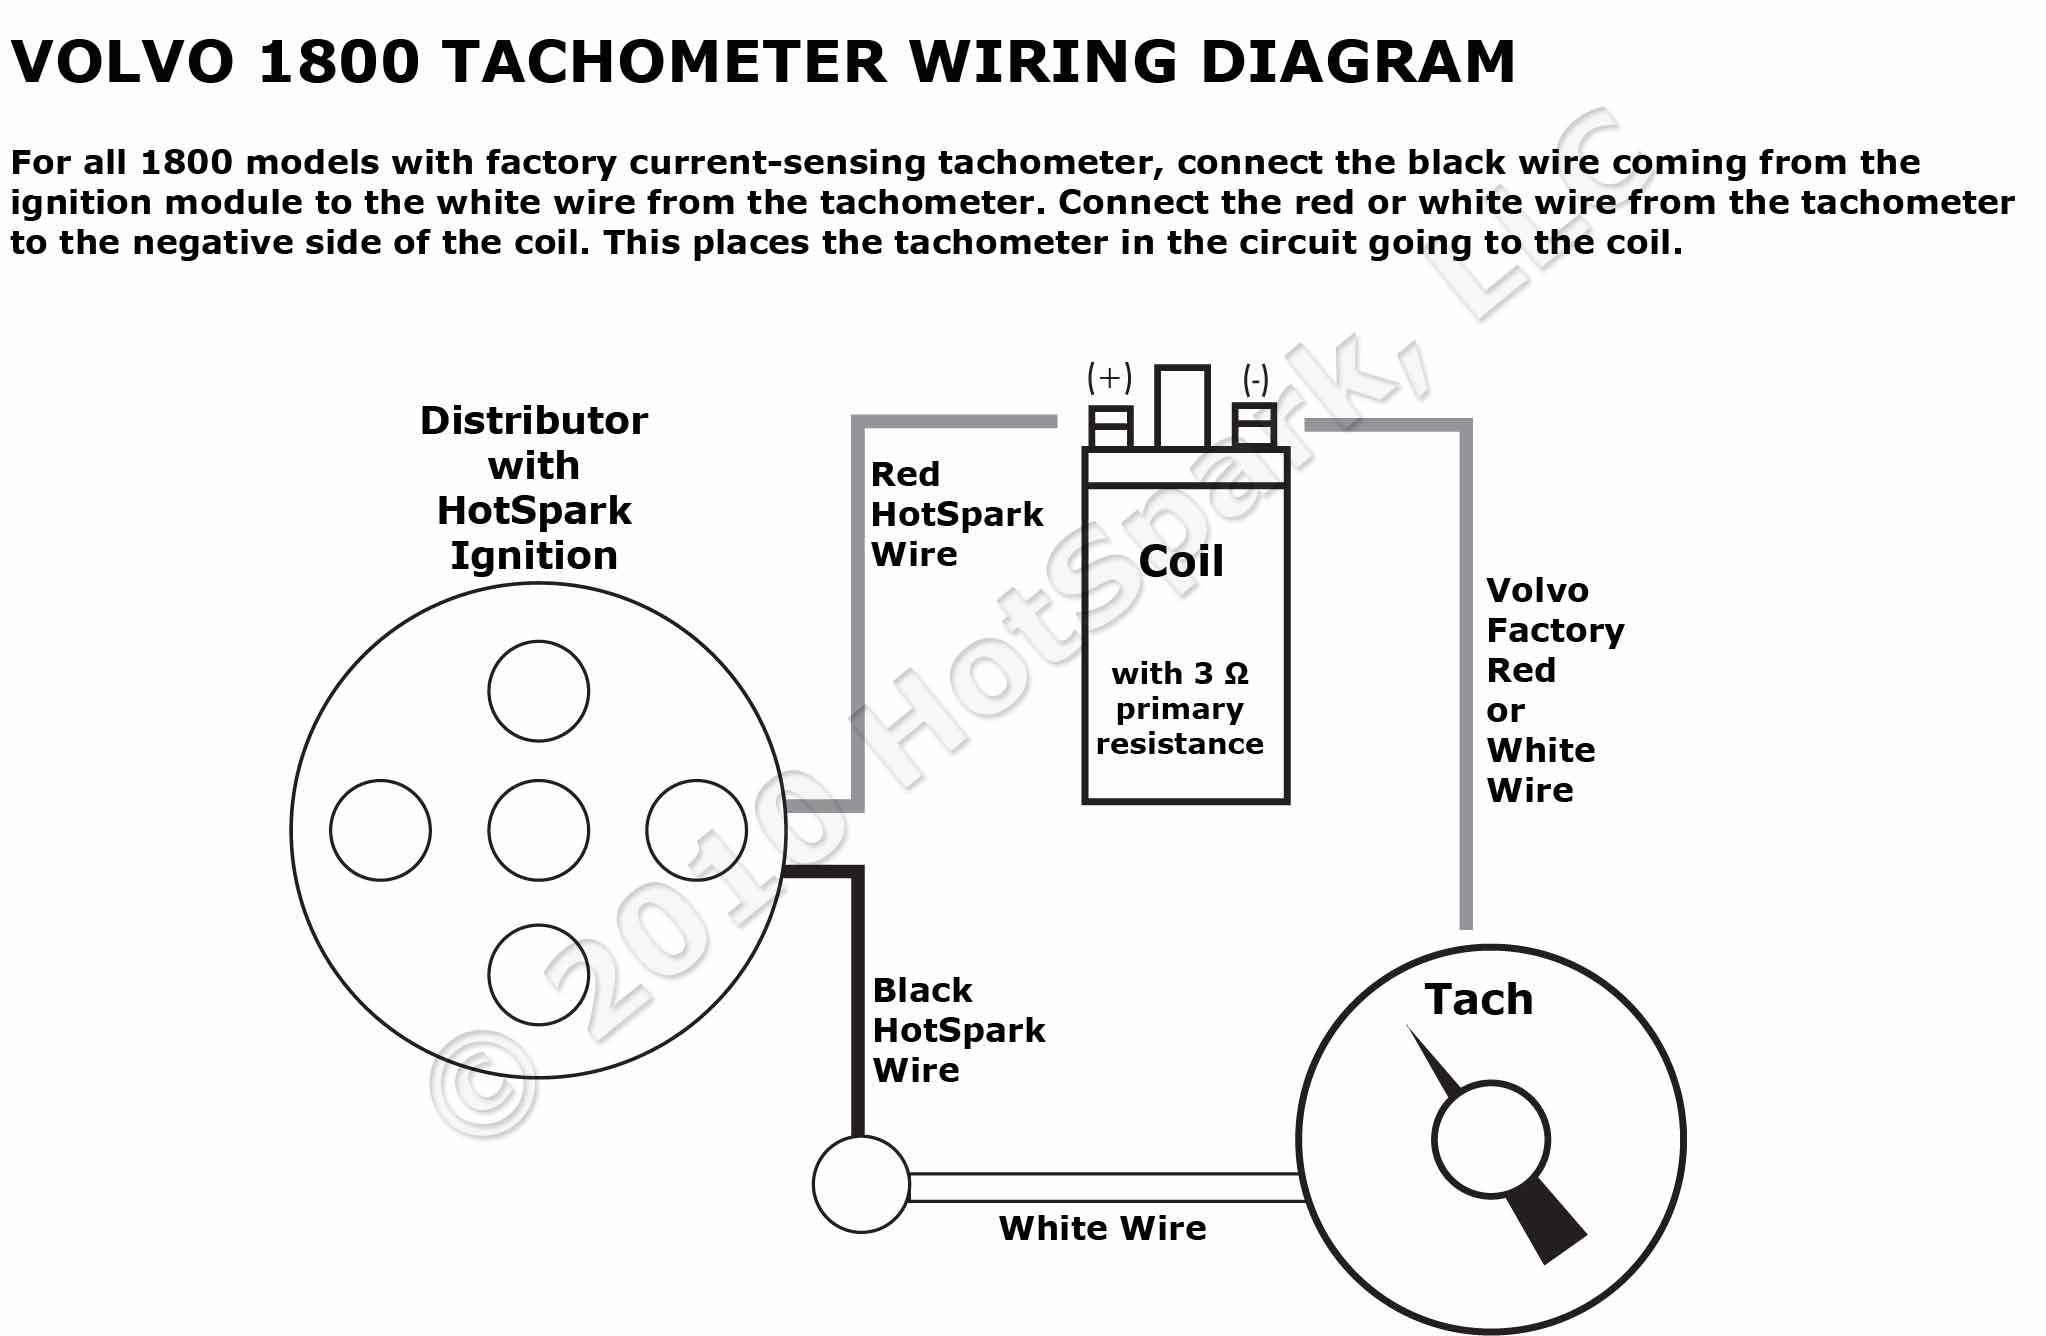 Volvo 1800 Tachometer and Hot Spark Wiring Diagram tachometer wiring diagram 1971 chevelle tachometer wiring diagram saas tachometer wiring diagram at bayanpartner.co